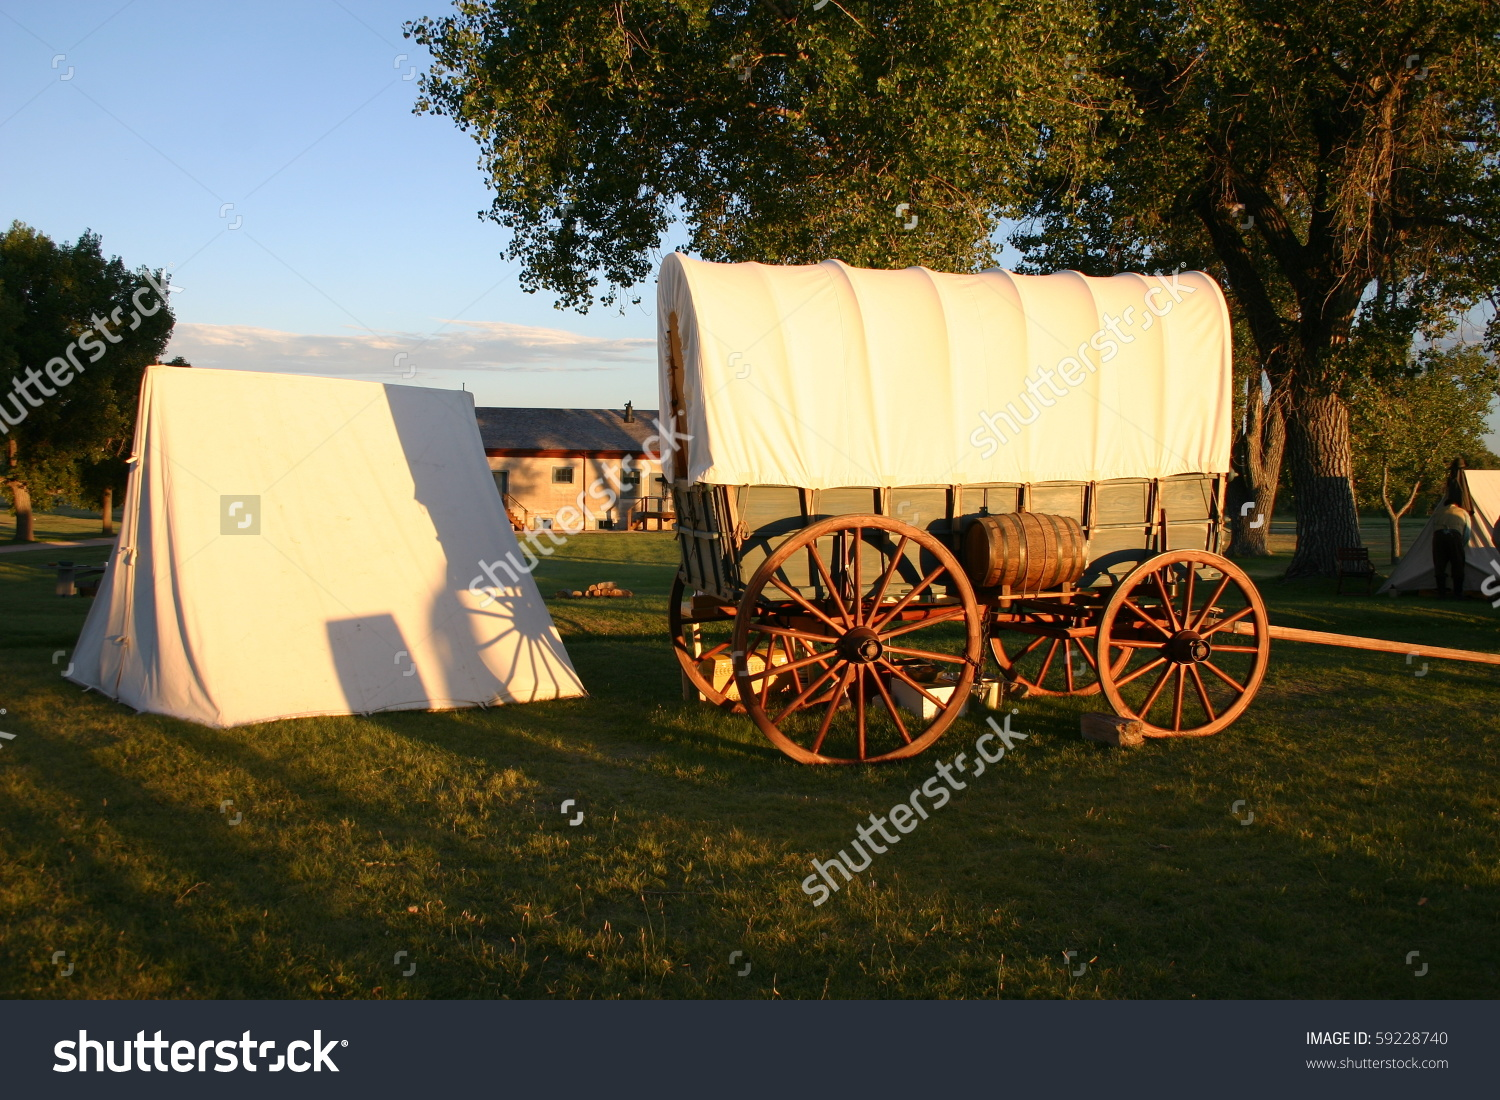 Fort Laramie National Historic Site Wyoming Covered Wagons Set Up.